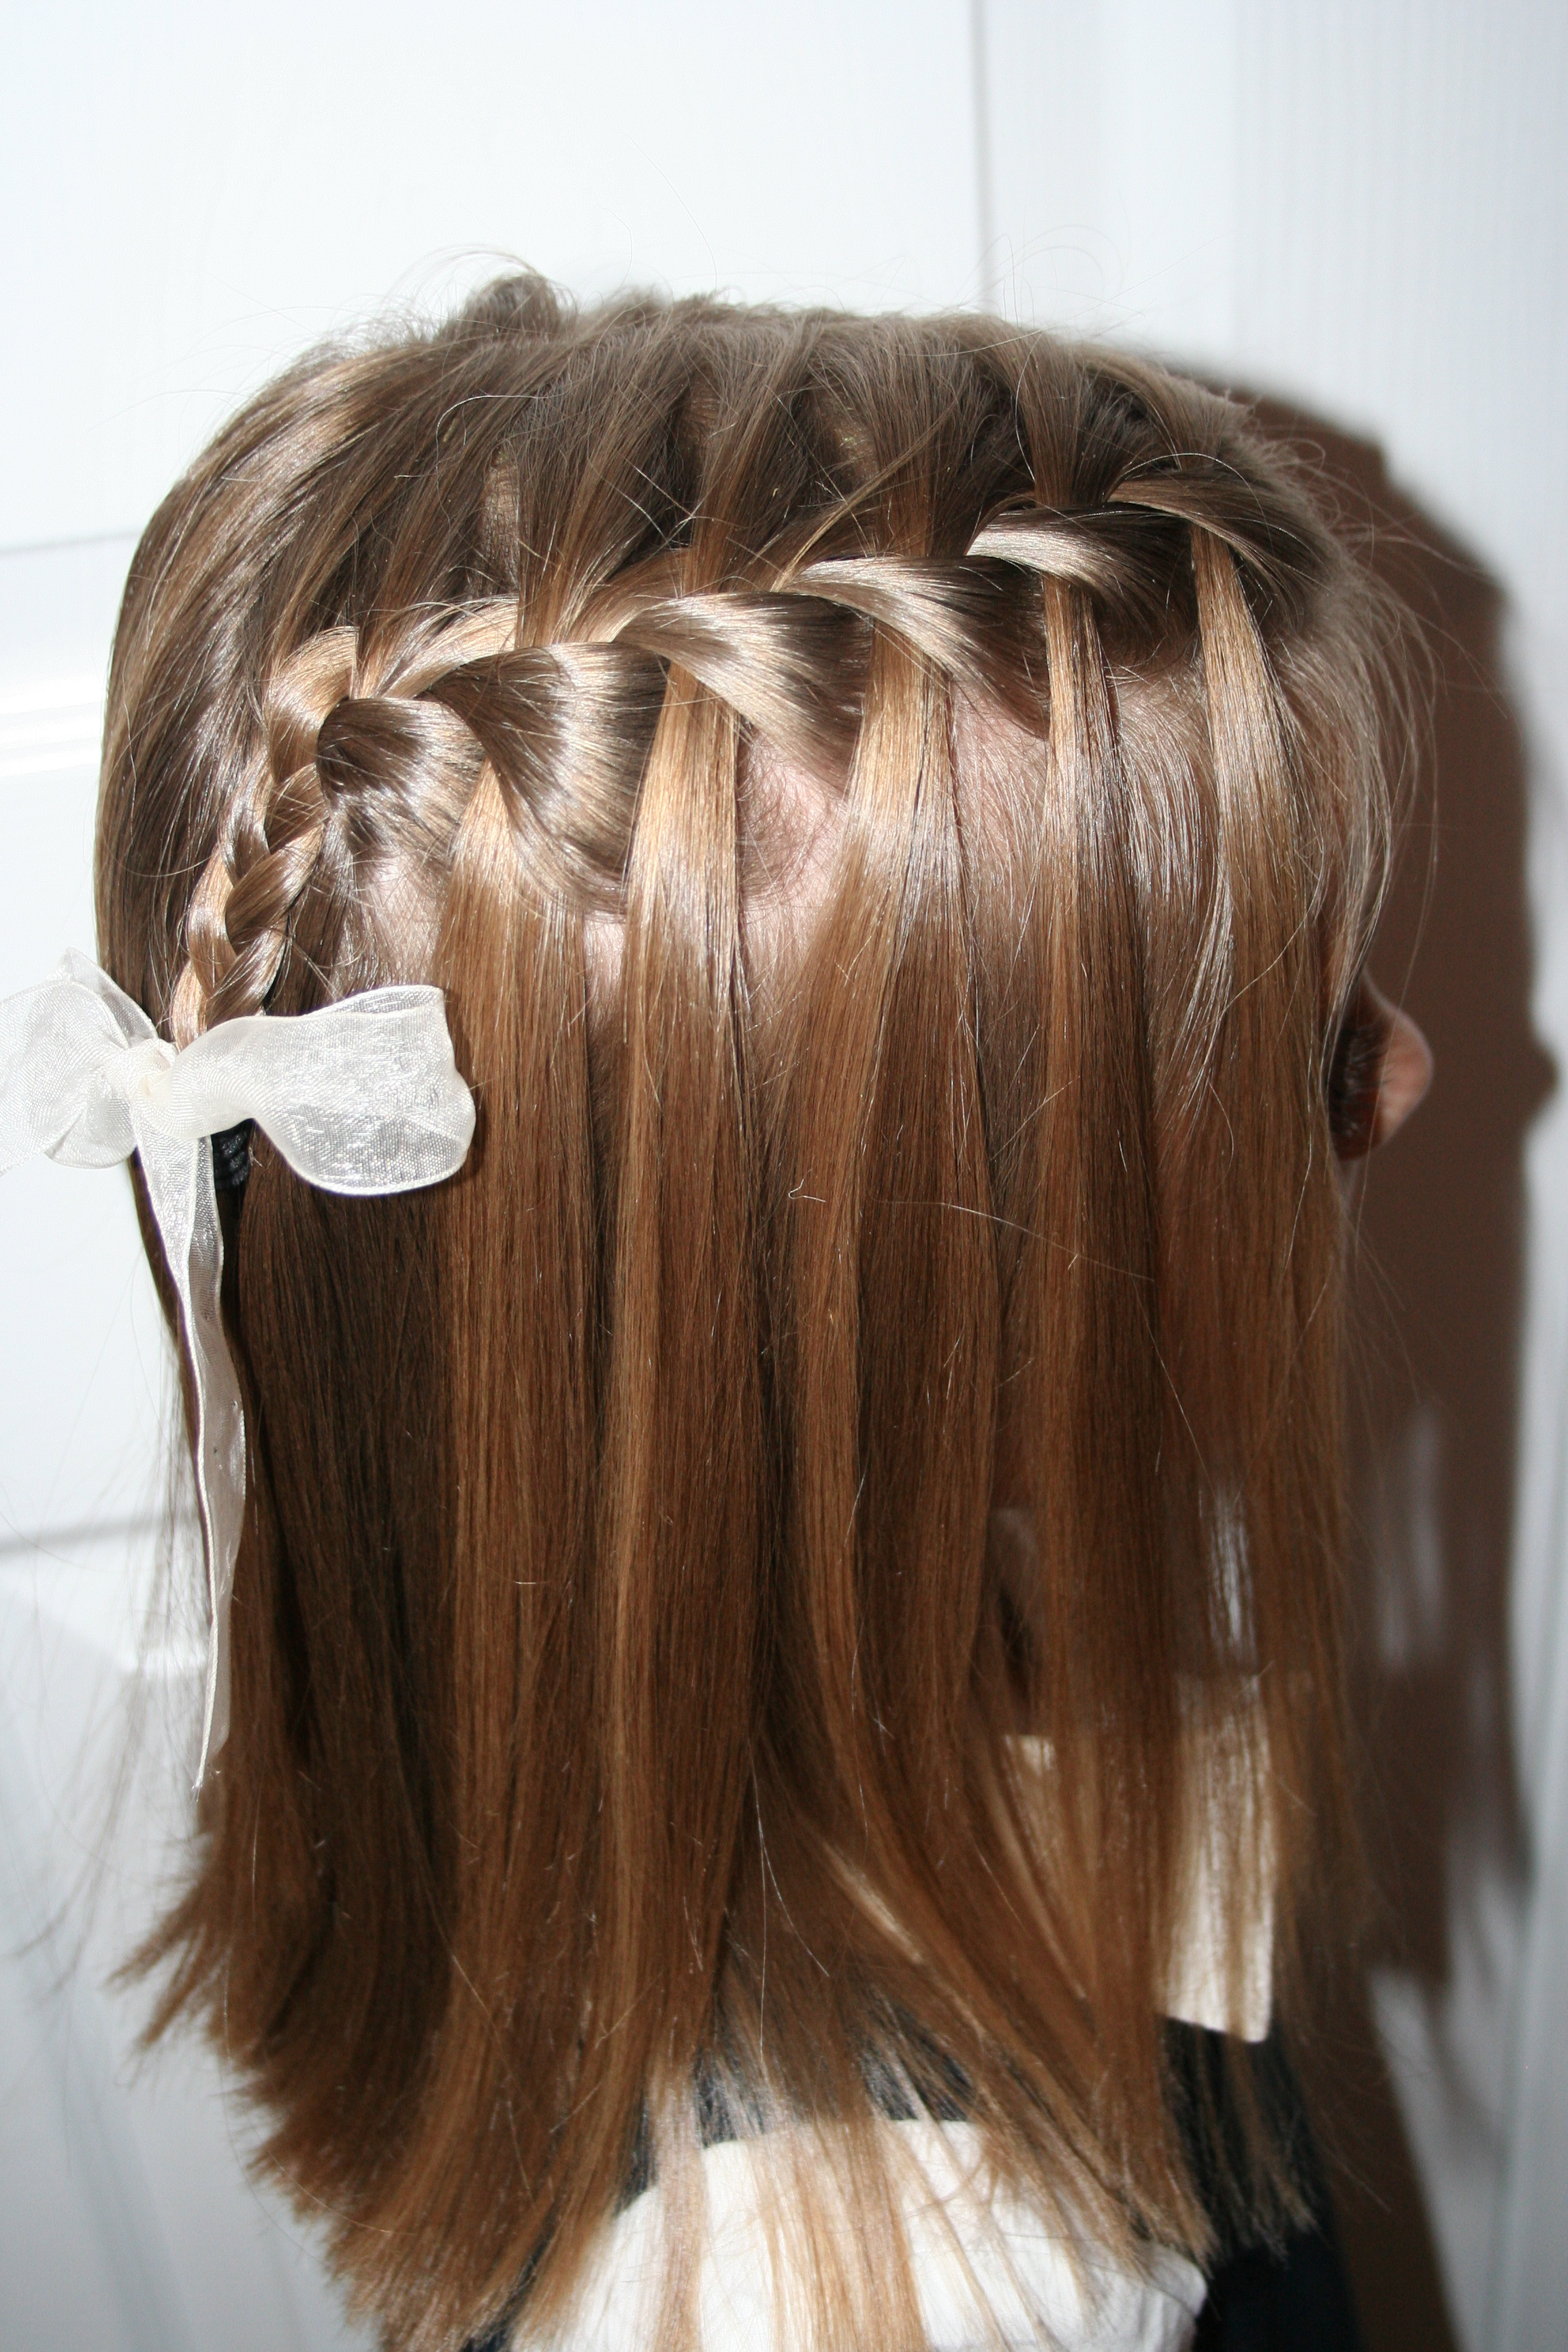 Best ideas about Waterfall Braid Hairstyles . Save or Pin Fan Favorites Now.